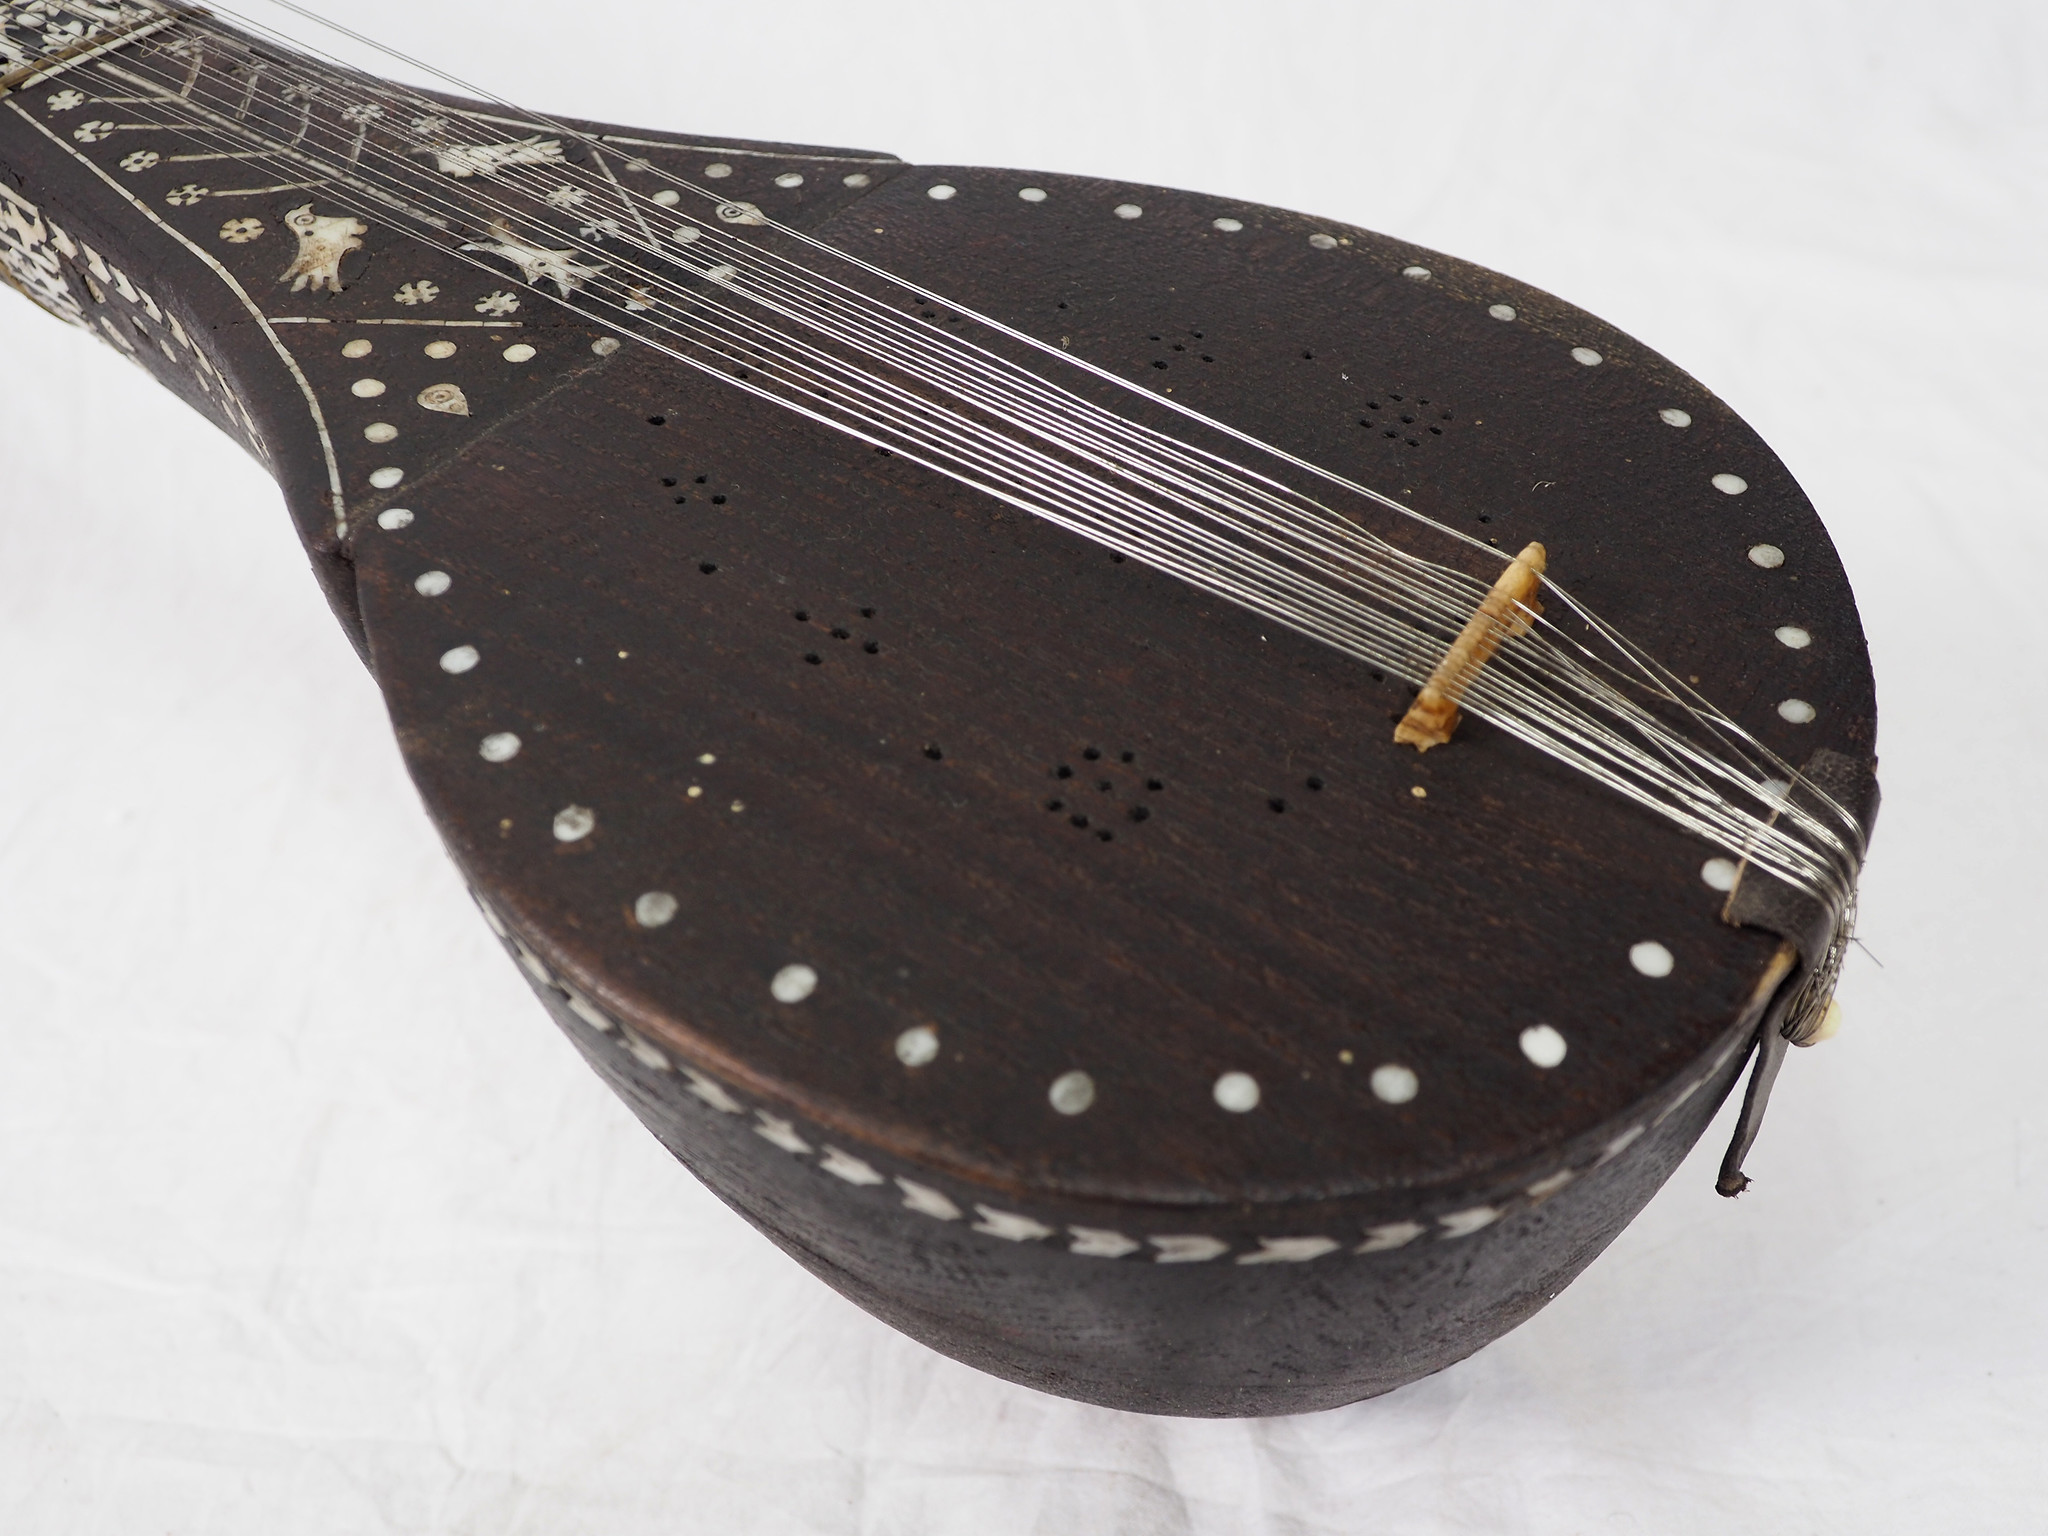 antique afghan folk music instrument Tambur Tanbur tanboor from Afghanaistan  with mother-of-pearl and bone inlaid  تنبور No:21